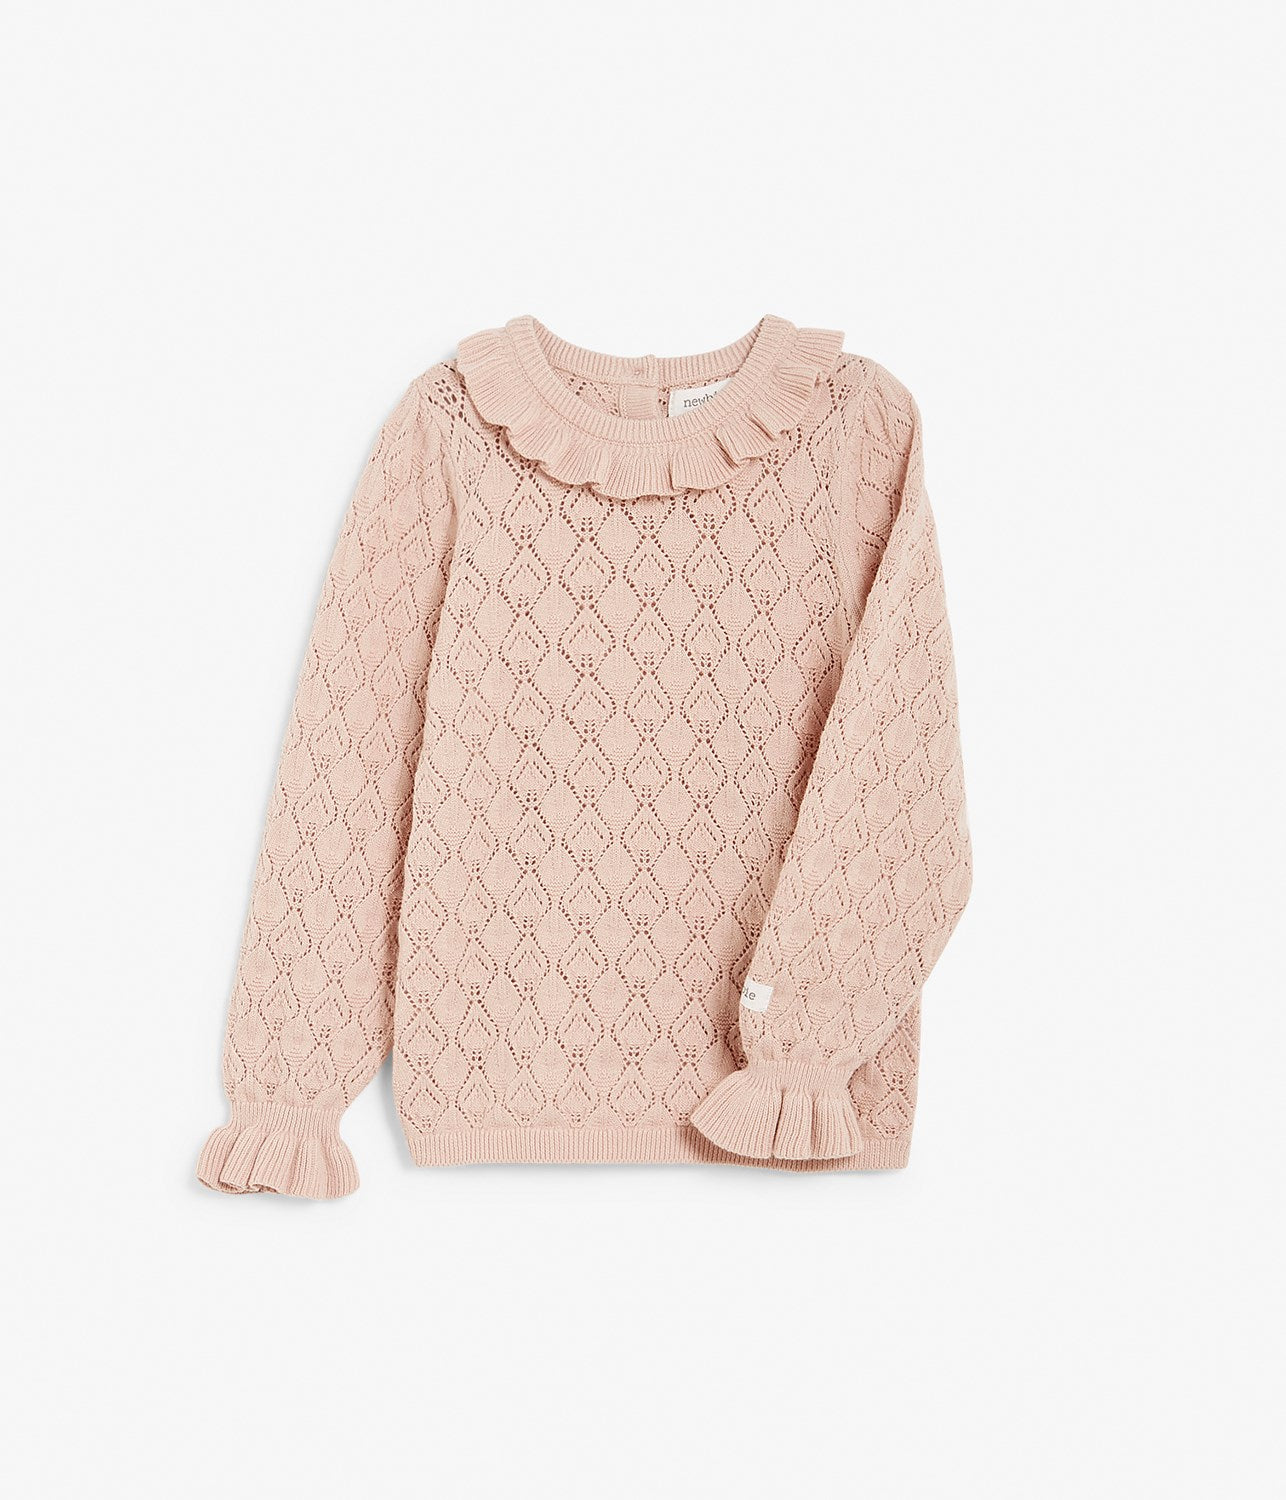 Kids pattern knit top with ruffles